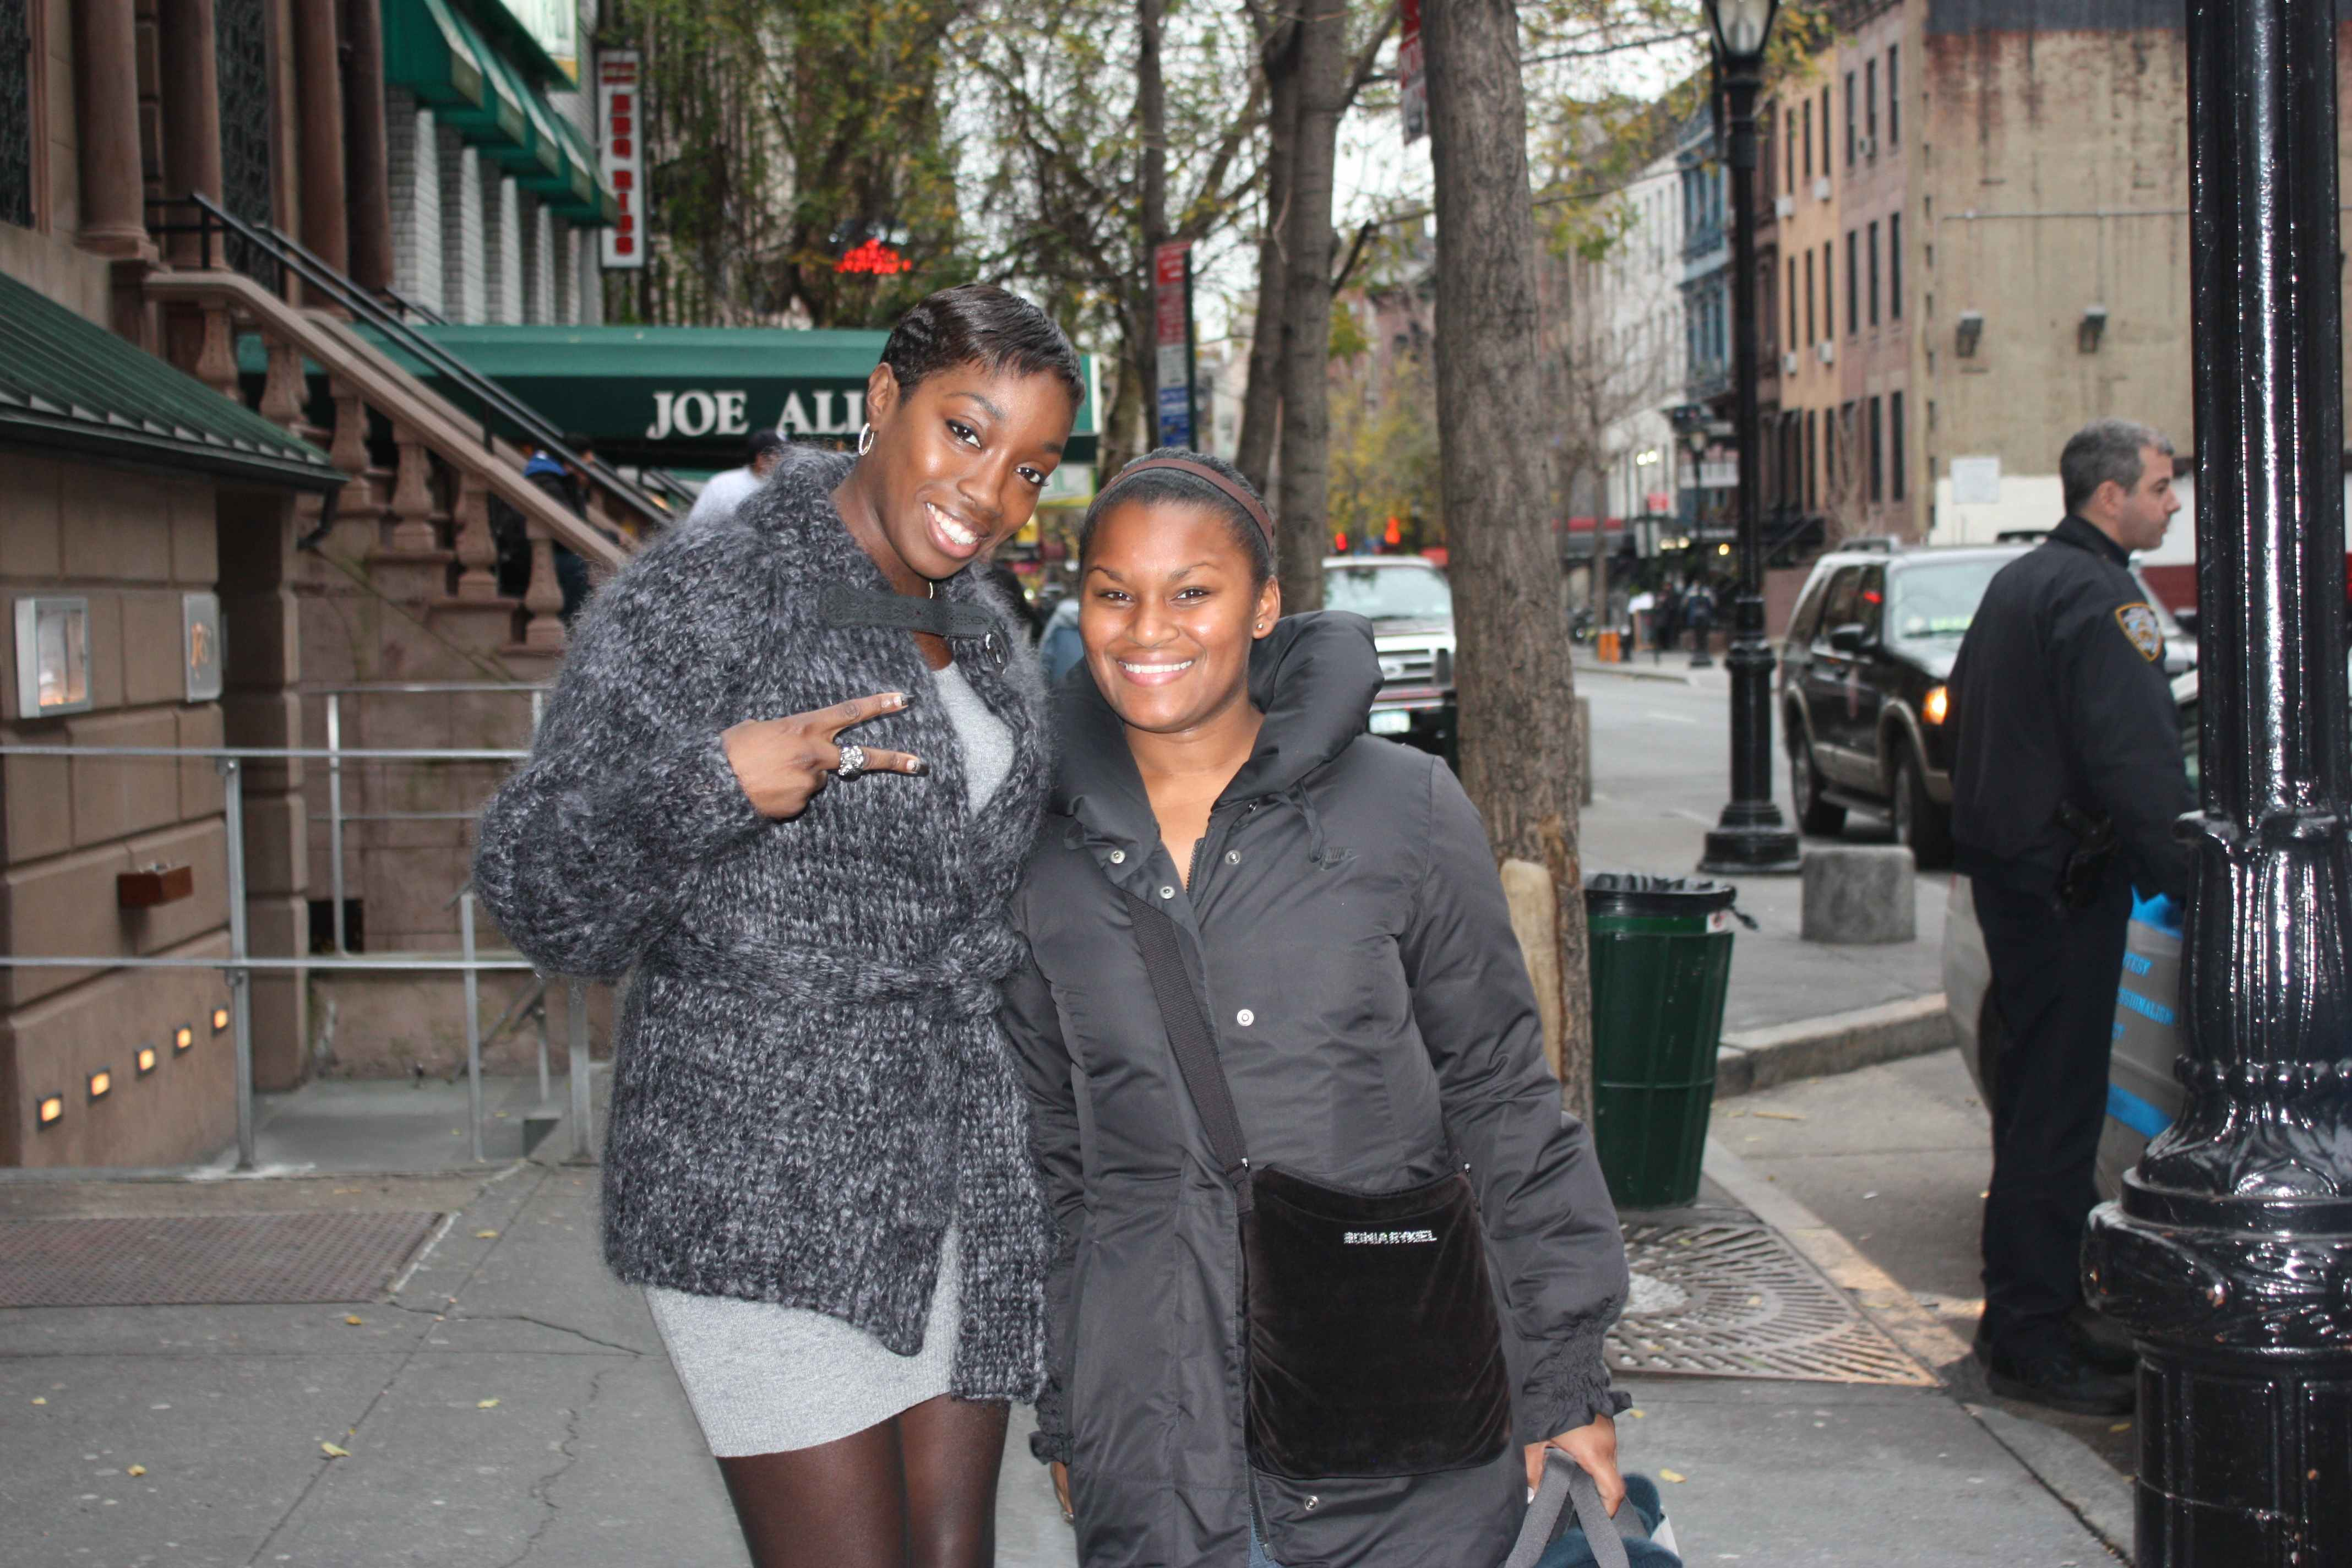 Estelle-Darling-star-à-New-York1 Rencontre avec une célébrité à New York : Estelle Darling